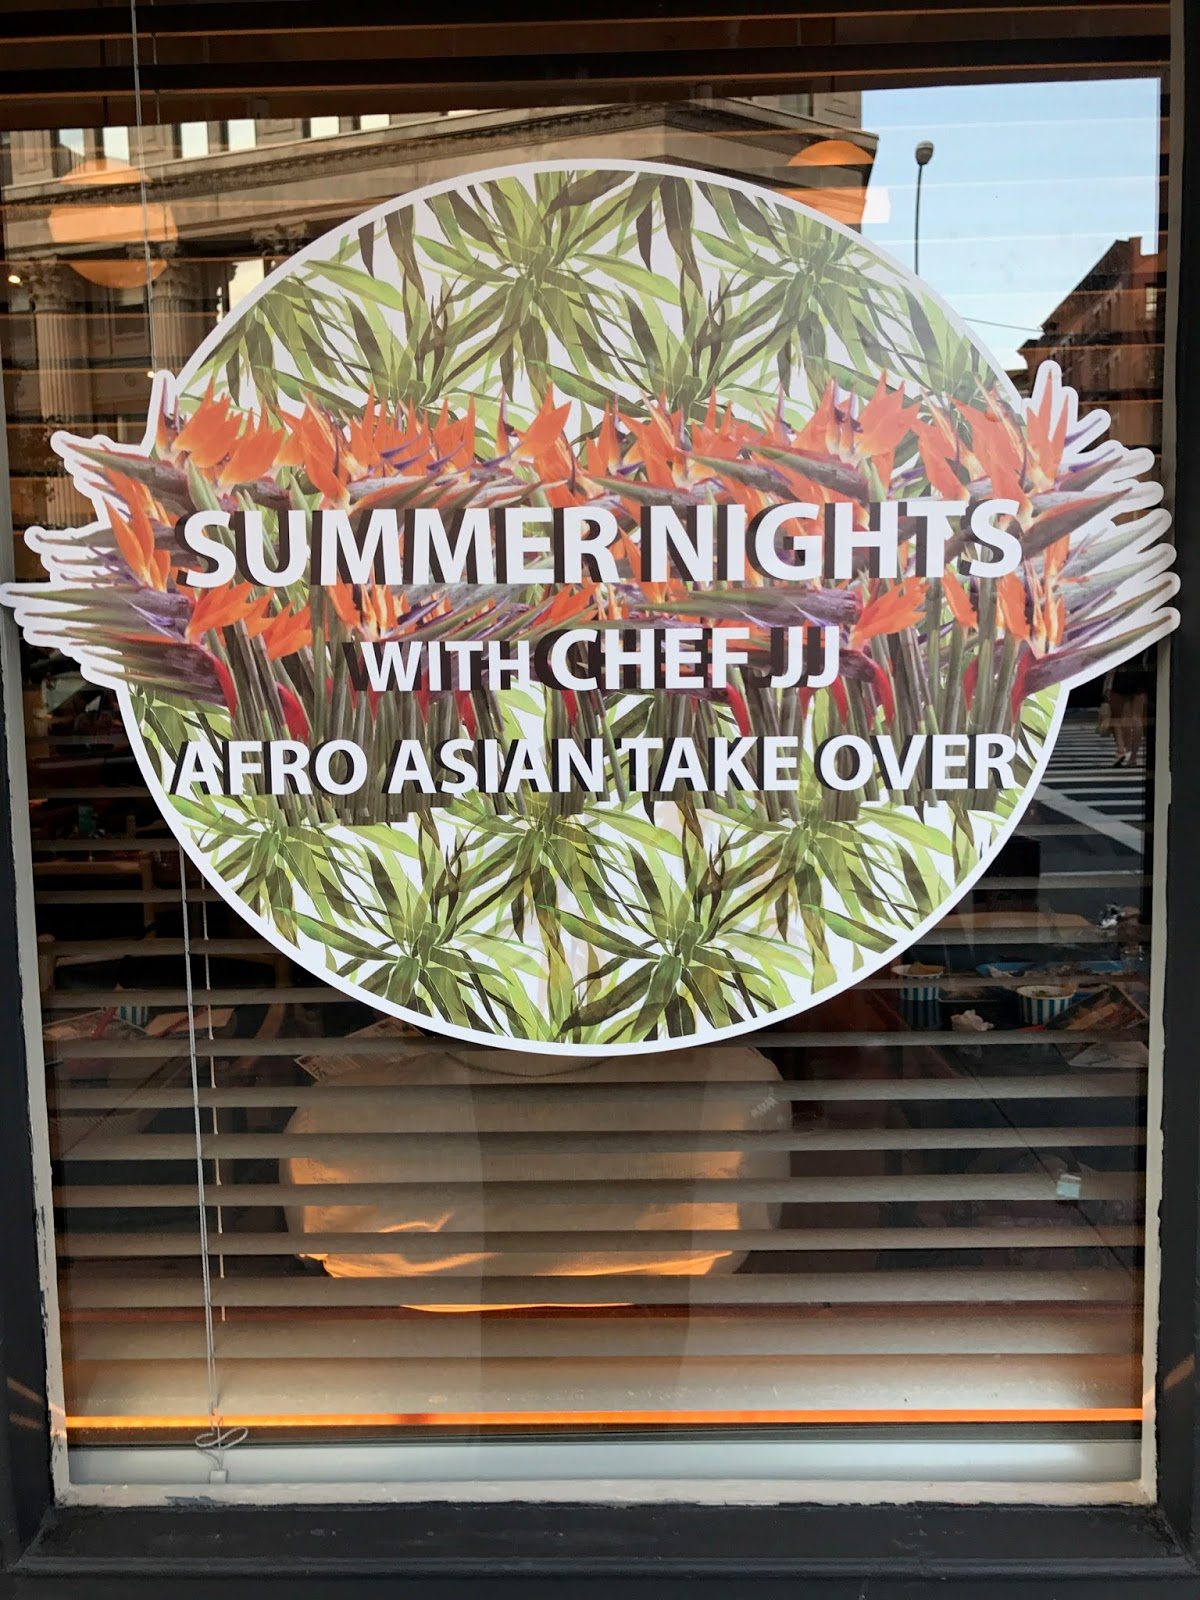 Eating Fabulously, Christopher Stewart, Chefs Club Counter, Chef JJ Afro Asian Takeover, SoHo,